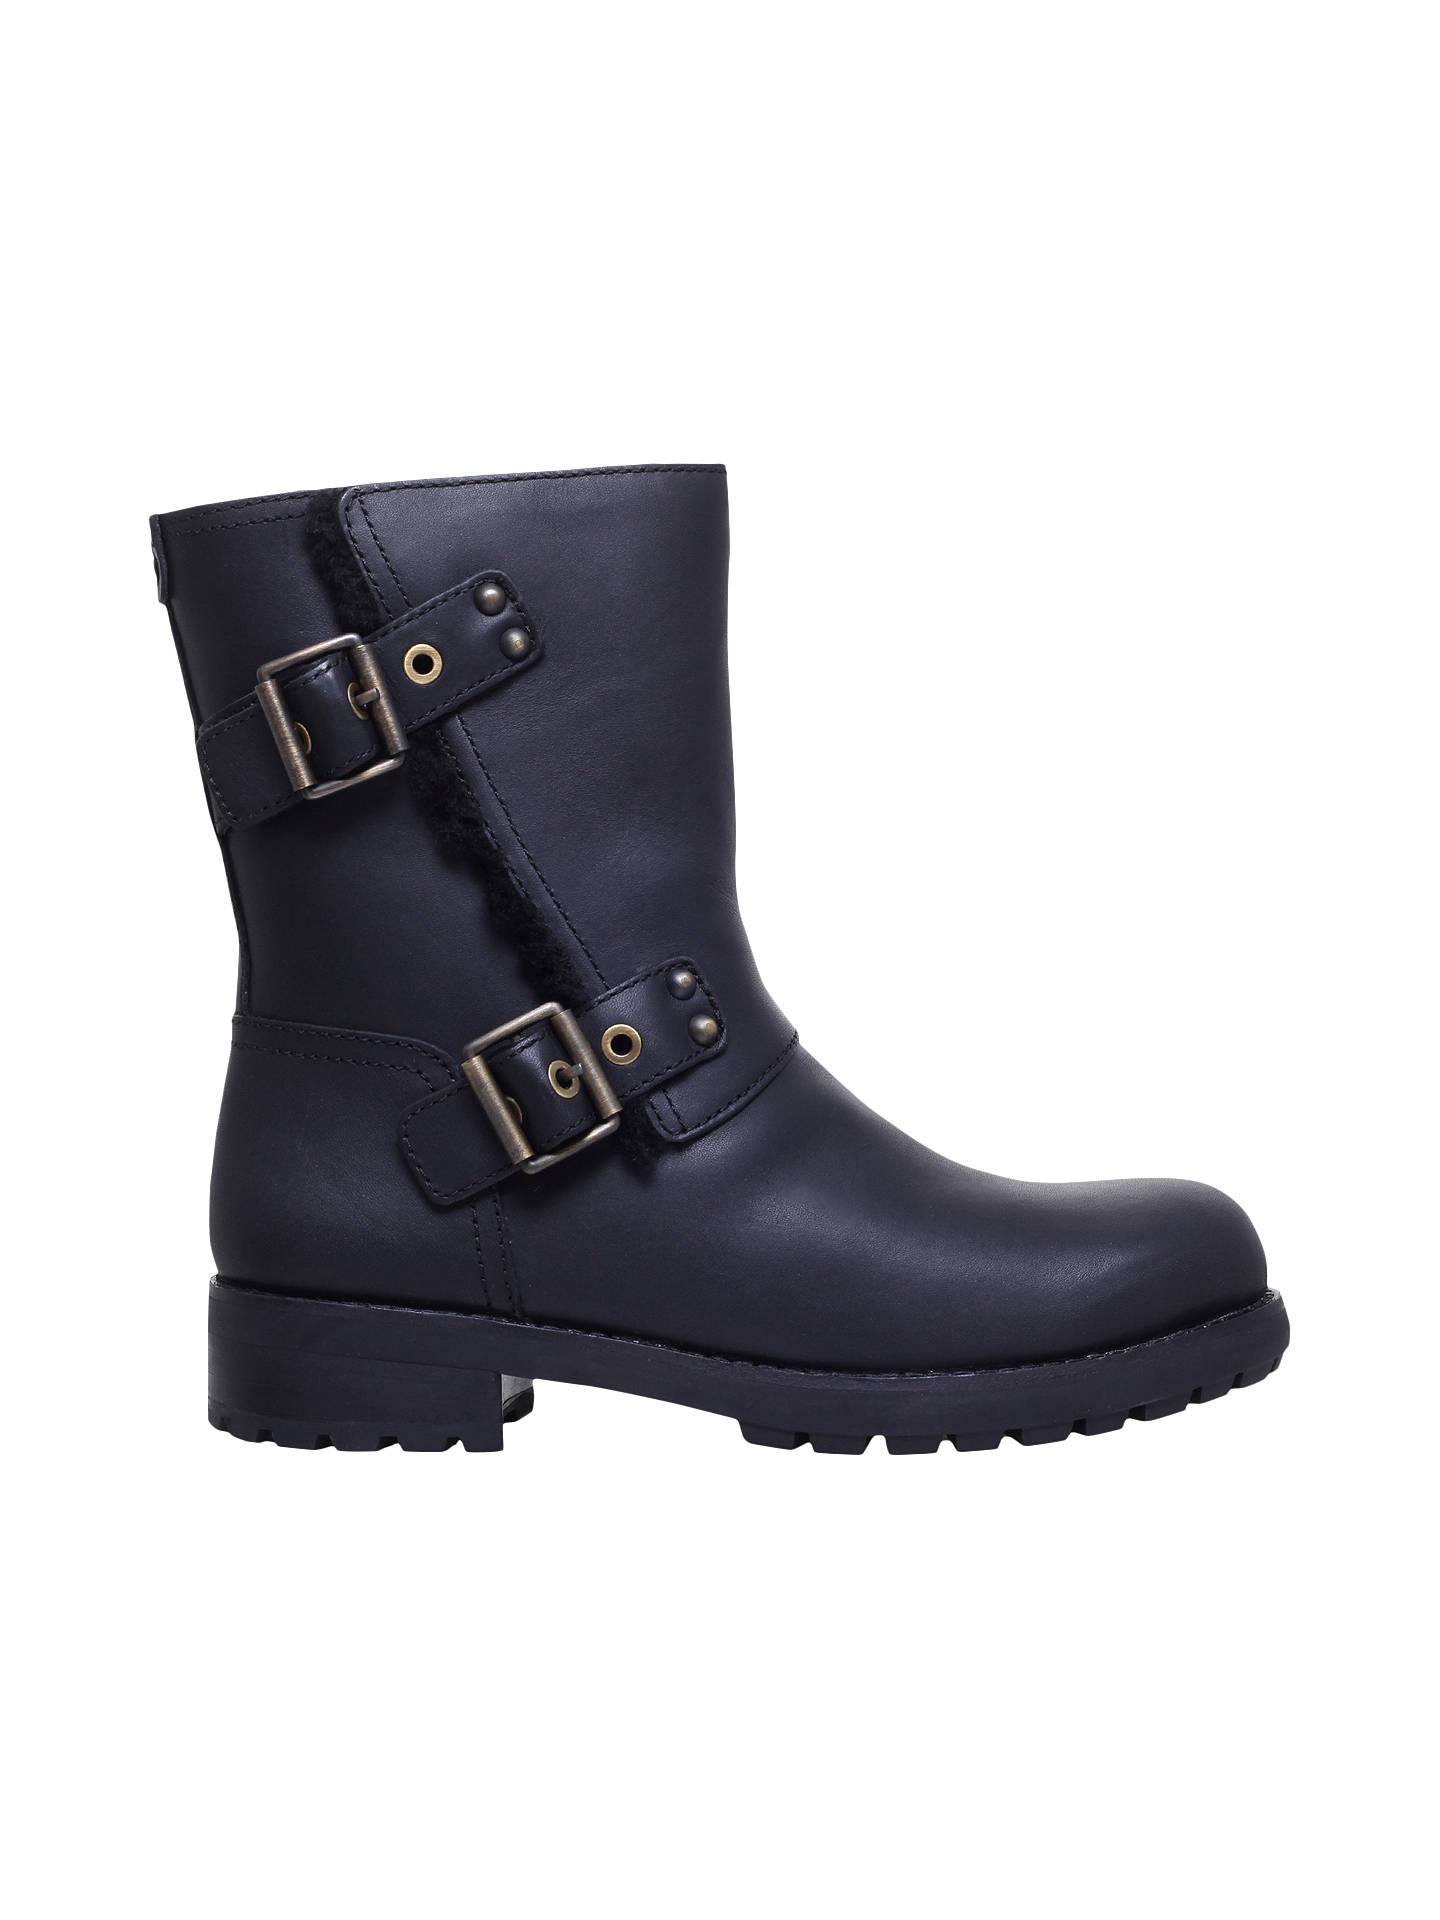 BuyUGG Niels Calf High Boots, Black Leather, 3 Online at johnlewis.com